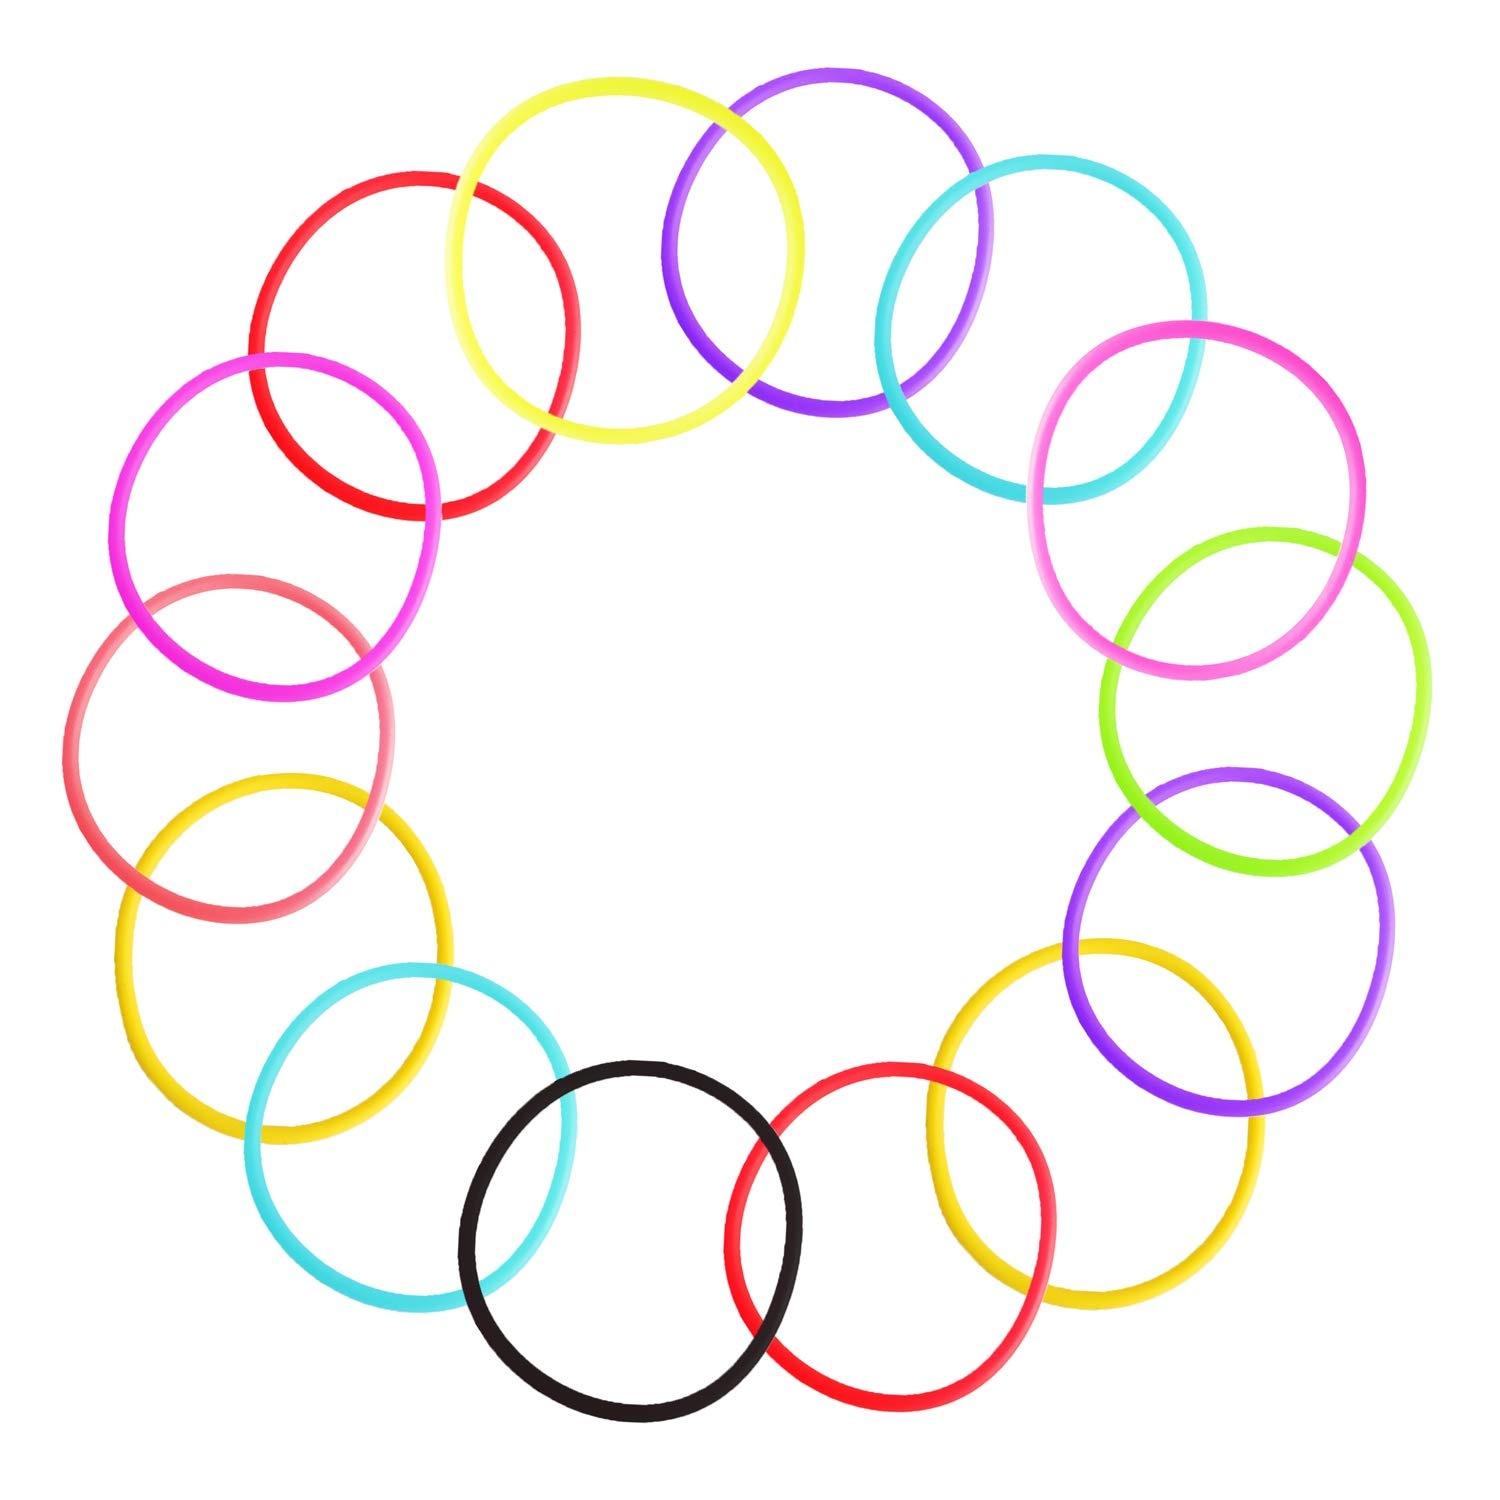 80's Party Rainbow Colorful Bracelets, Retro Rock Pop Star Silicone Jelly Glow Wristbands Luminous Hair Ties Bands for Theme Events Christmas Party Favors, Adults, Women, Kids, Girls Gift (30PCS)